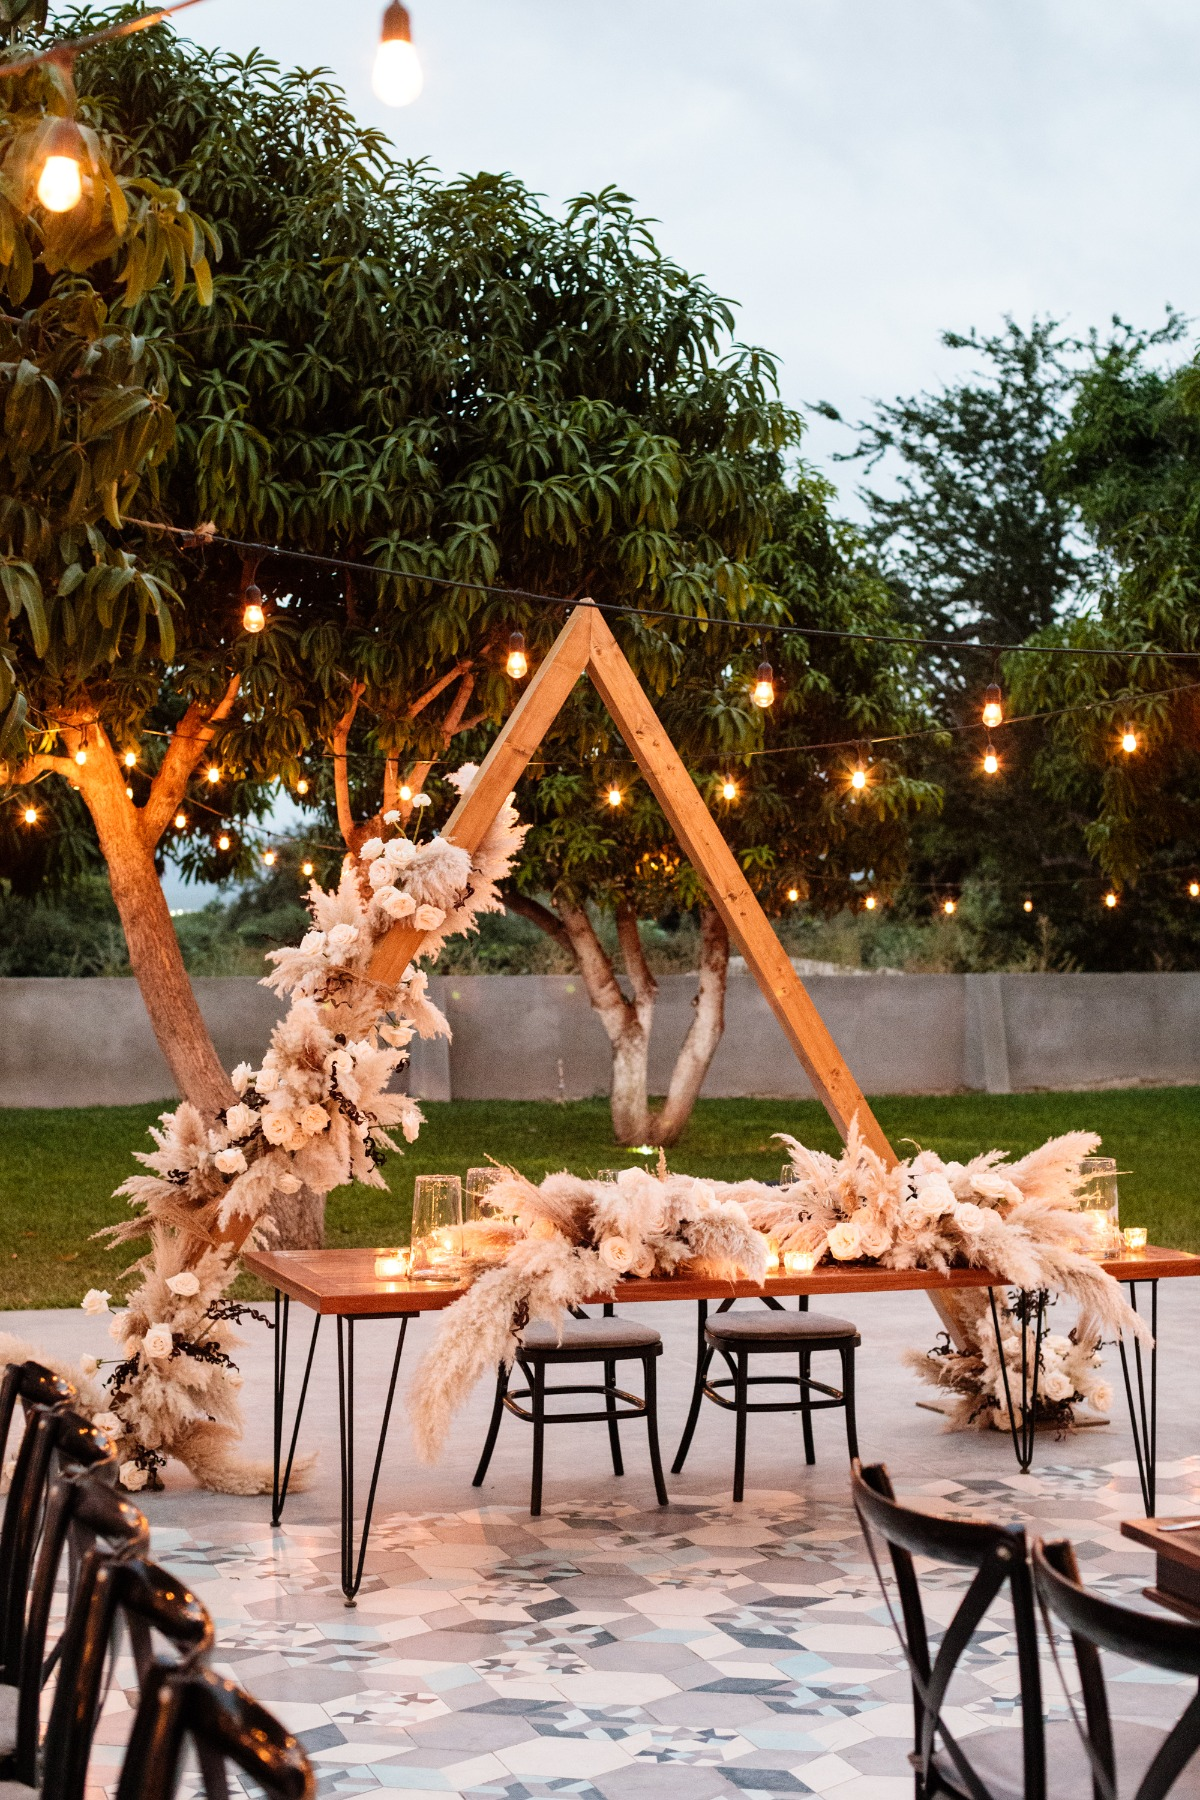 Triangle backdrop for the sweetheart table